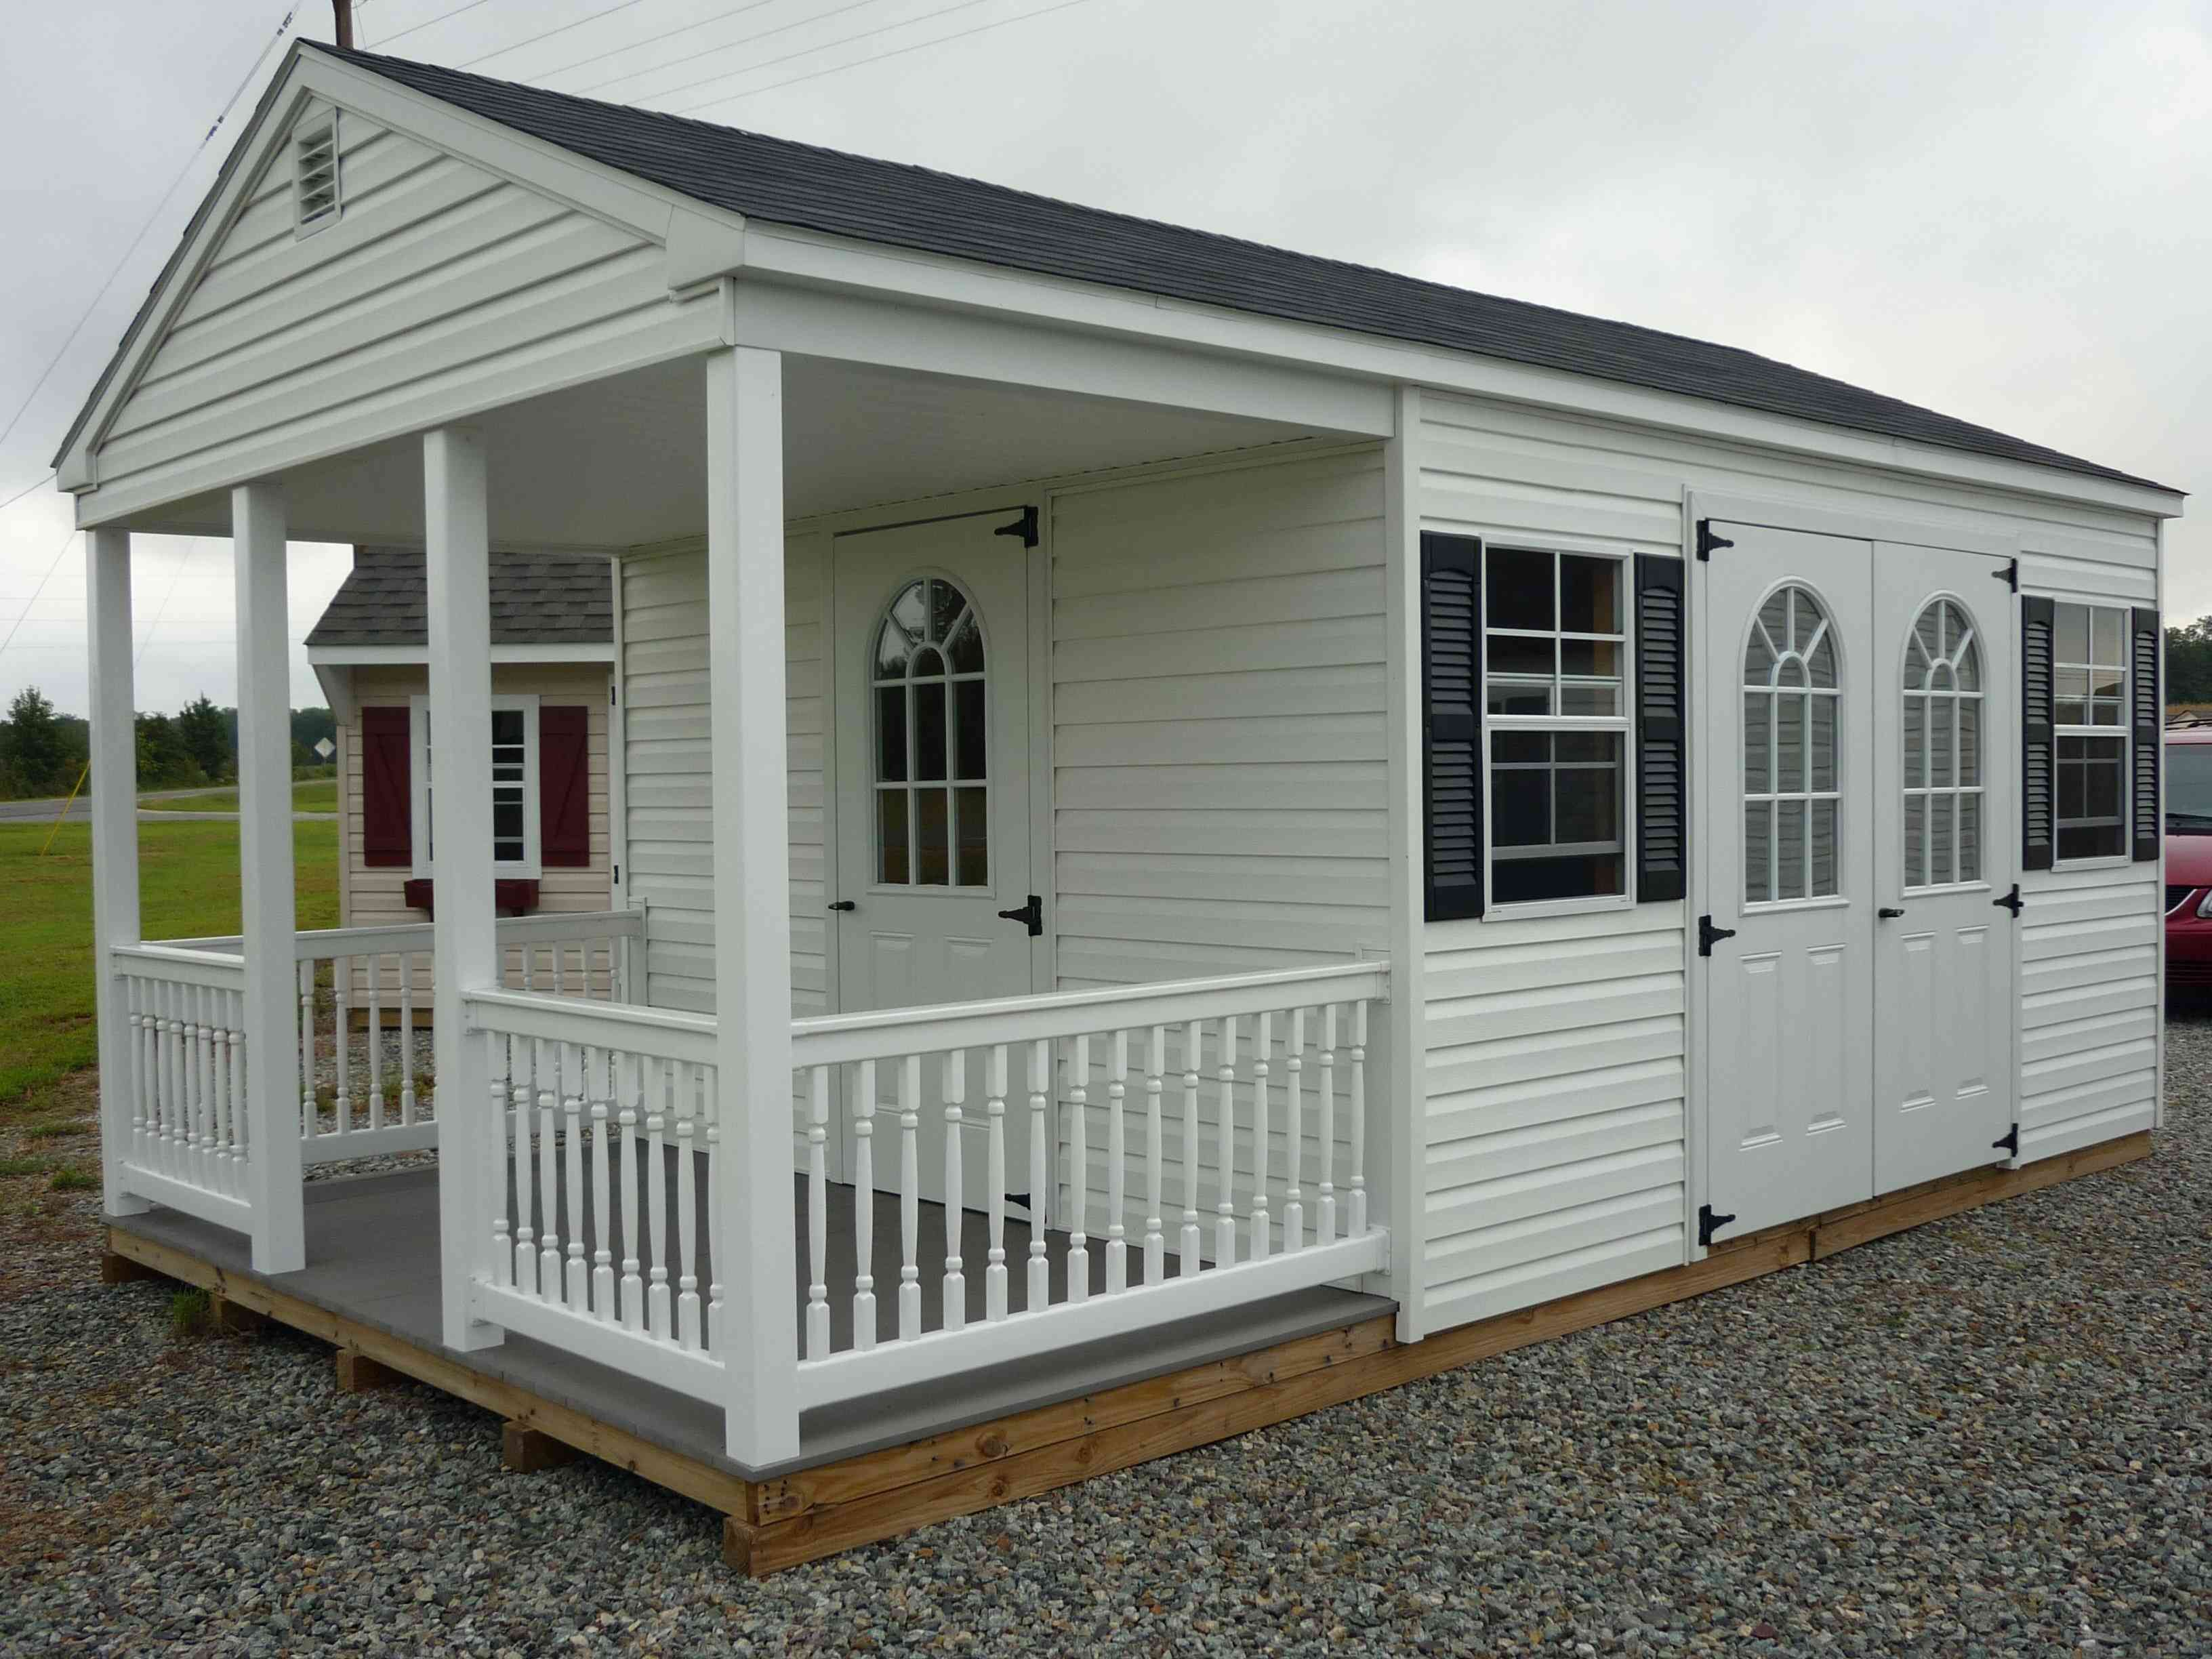 Shed roof house plans the a frame shed with optional porch